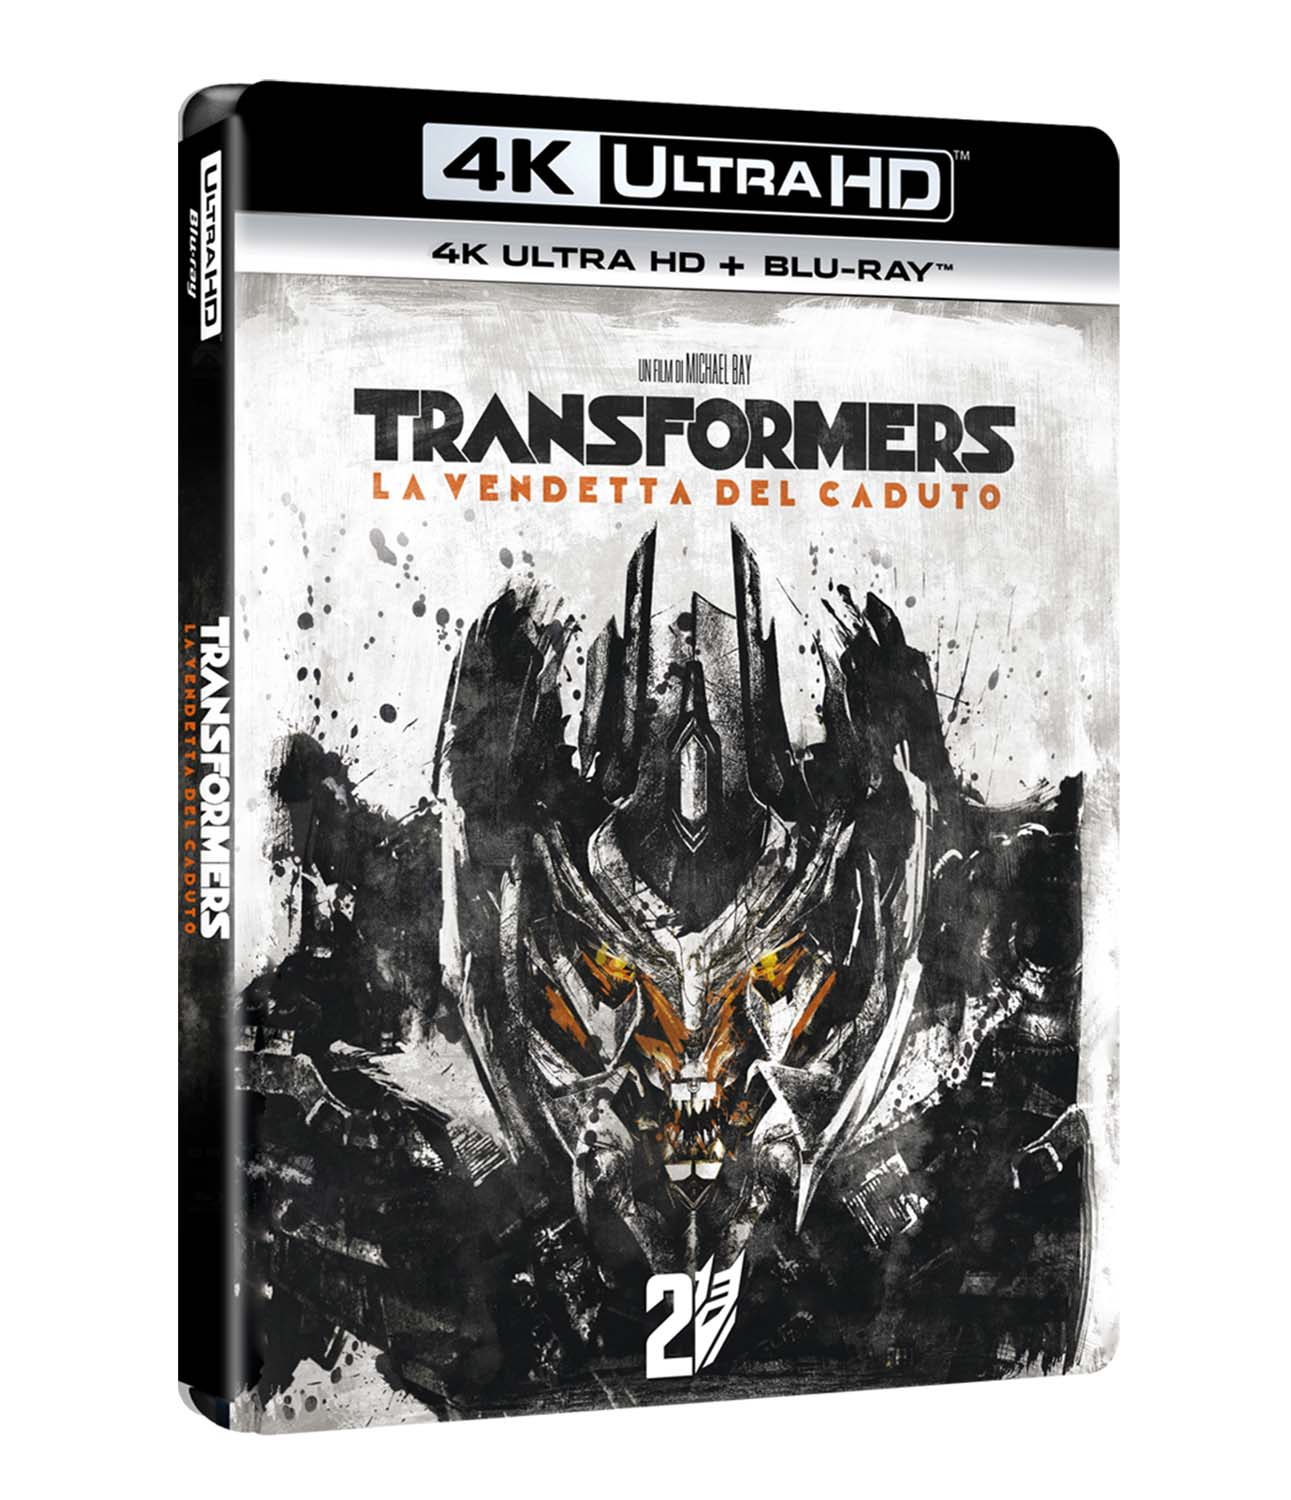 TRANSFORMERS - LA VENDETTA DEL CADUTO (BLU-RAY 4K ULTRA HD+BLU-RAY)